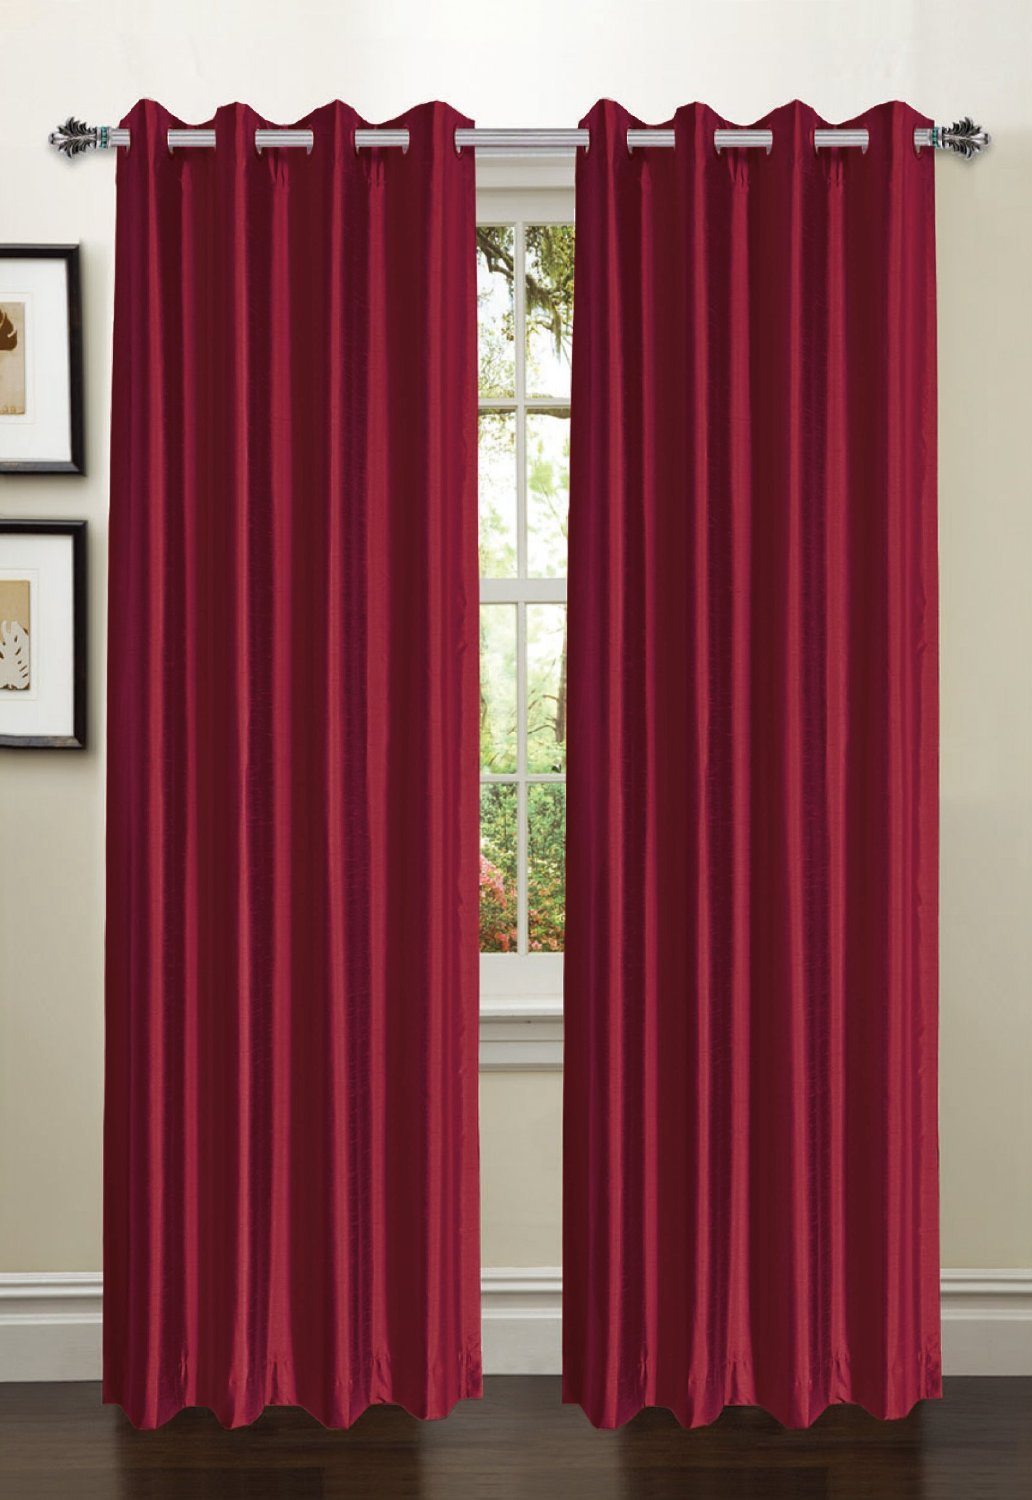 Jane Faux Silk Curtain (2 Piece Set) Burgundy